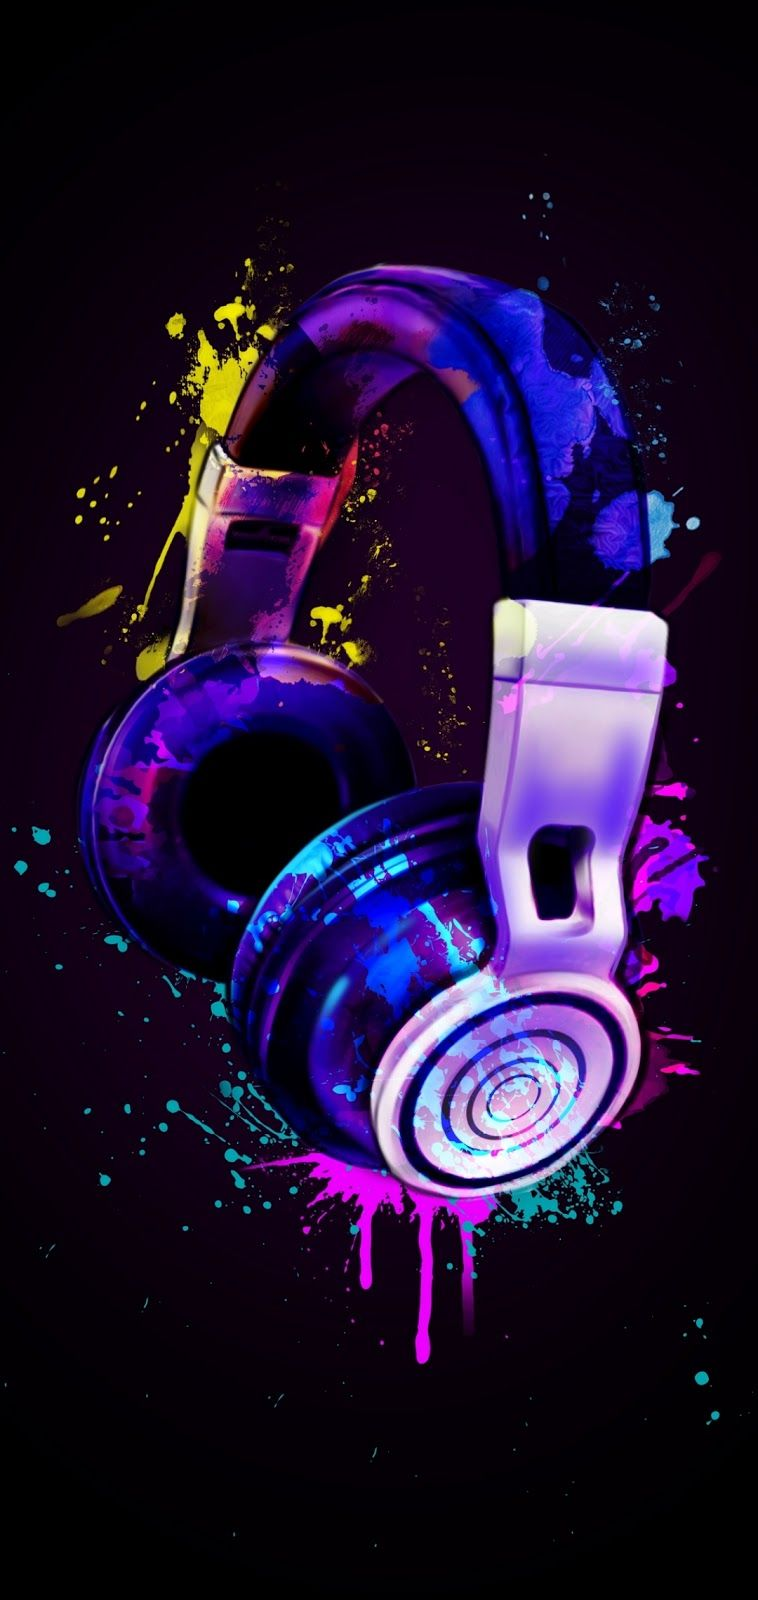 Exclusive Wallpaper Music Hd Ddwallpaper Graffiti Wallpaper Music Wallpaper Neon Wallpaper